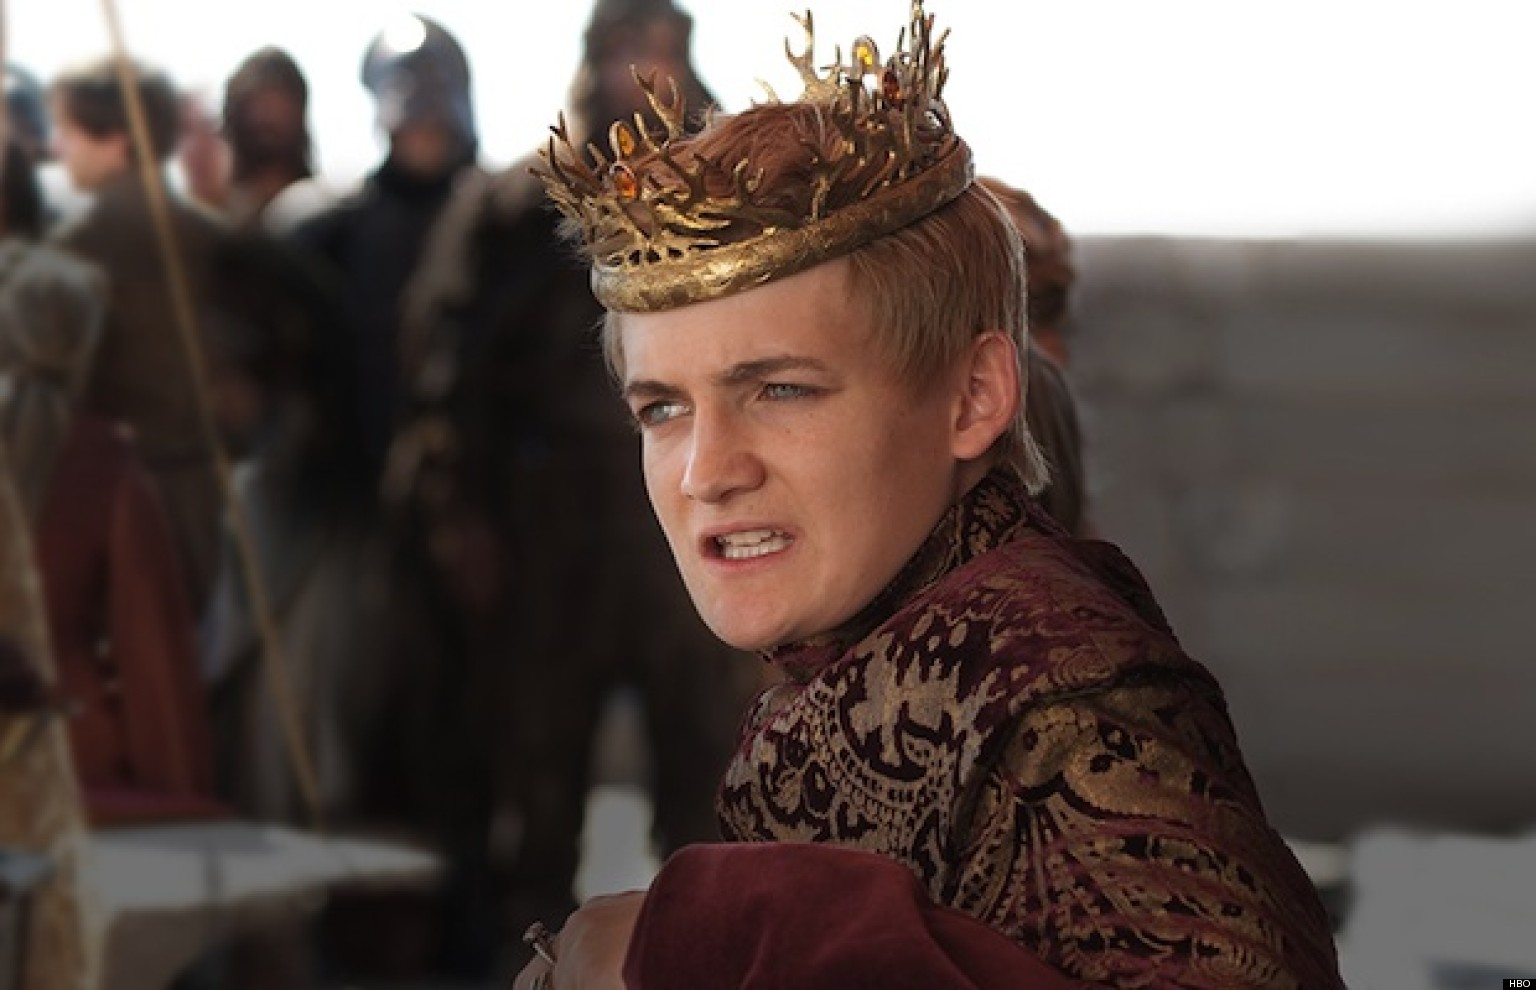 joffrey raps about winnie the pooh with 39 got monies and honies 39. Black Bedroom Furniture Sets. Home Design Ideas